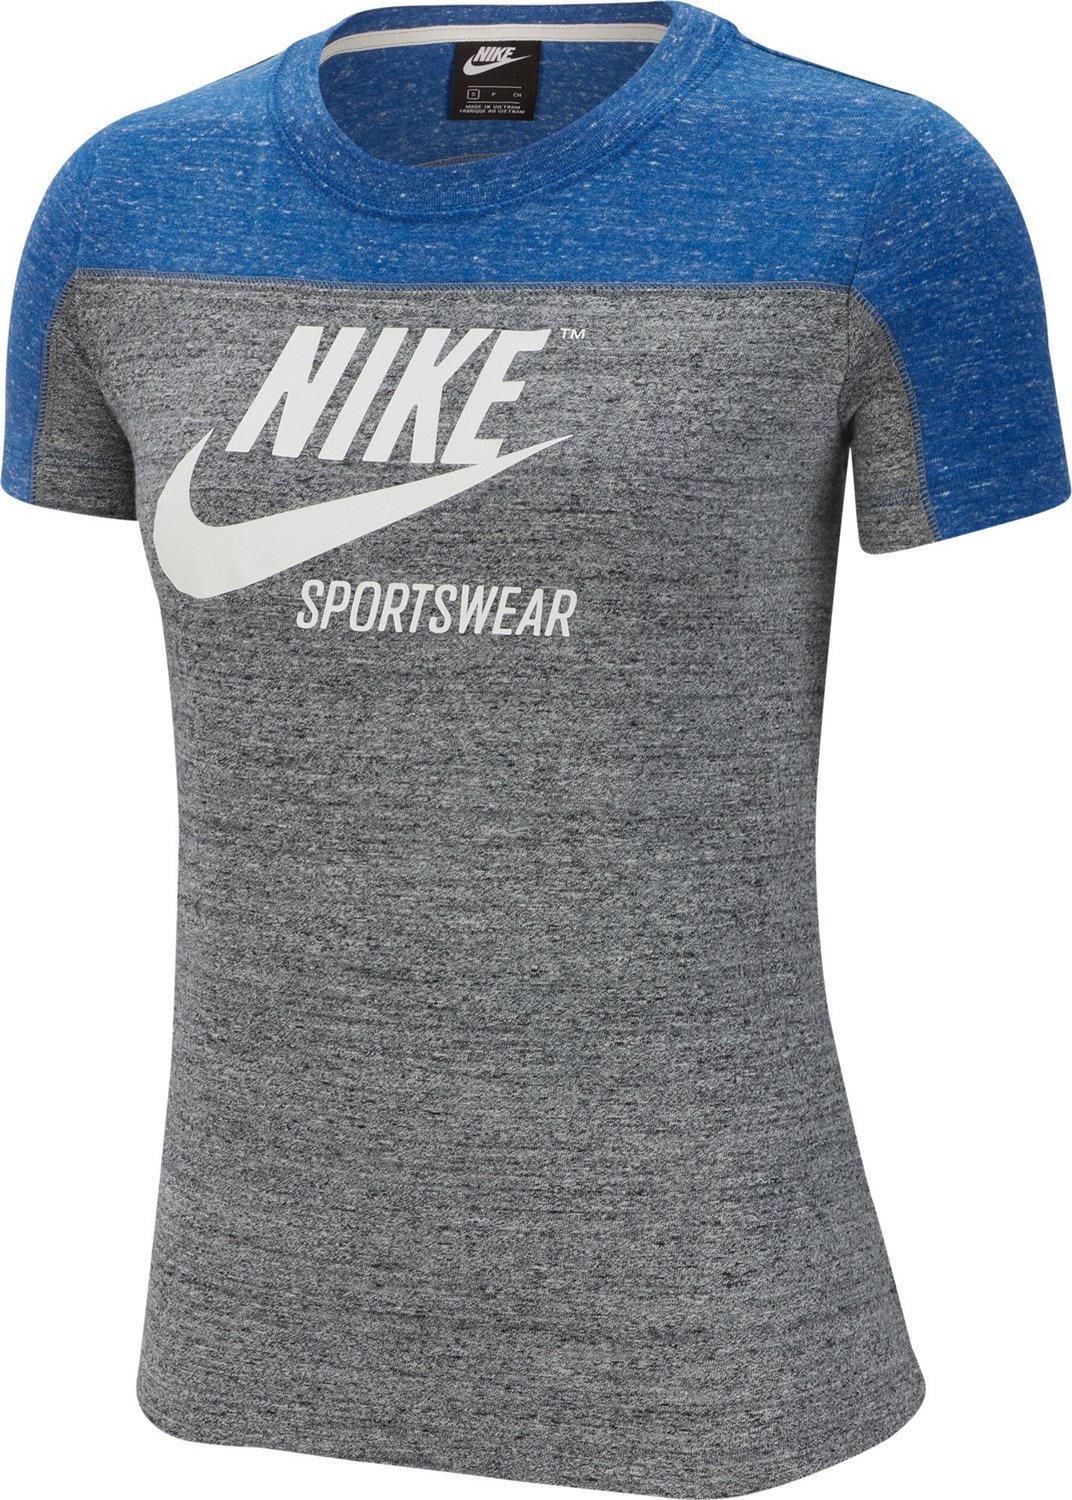 9a70ed680 Nike Vintage Sportswear T Shirt – EDGE Engineering and Consulting ...